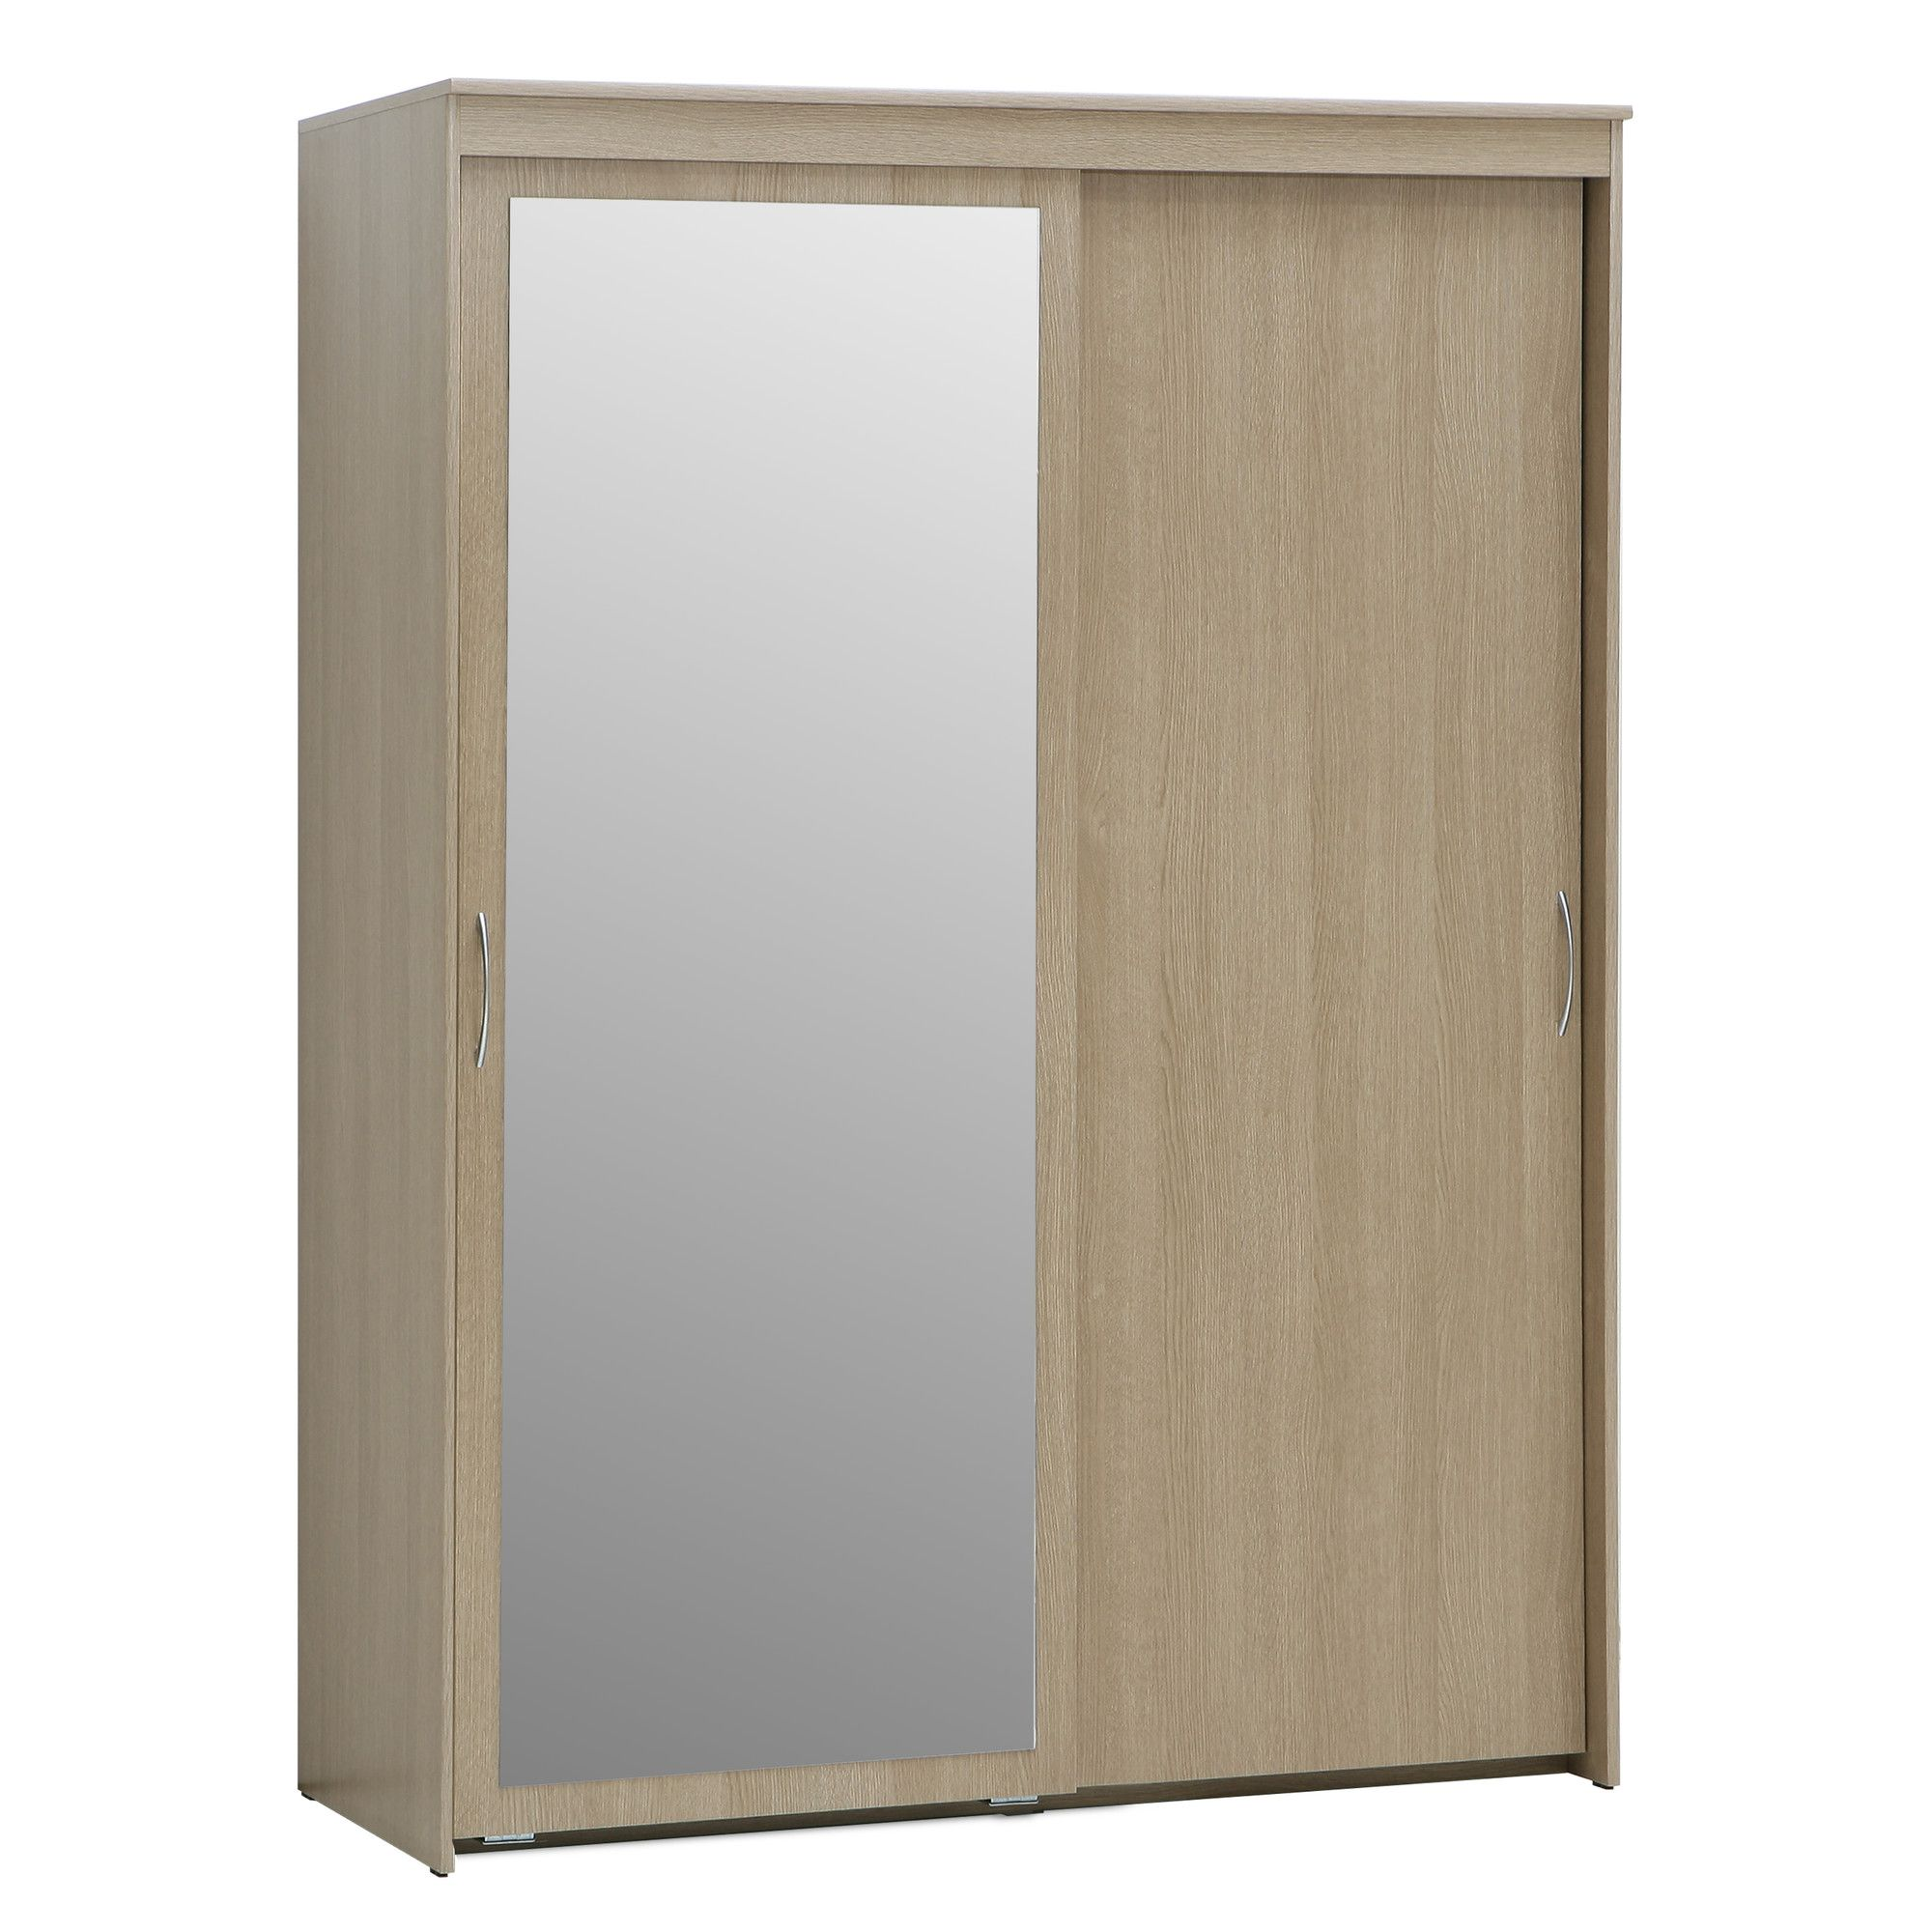 Forte Onyx Two Door Slider Wardrobe with Mirror at Tesco Direct